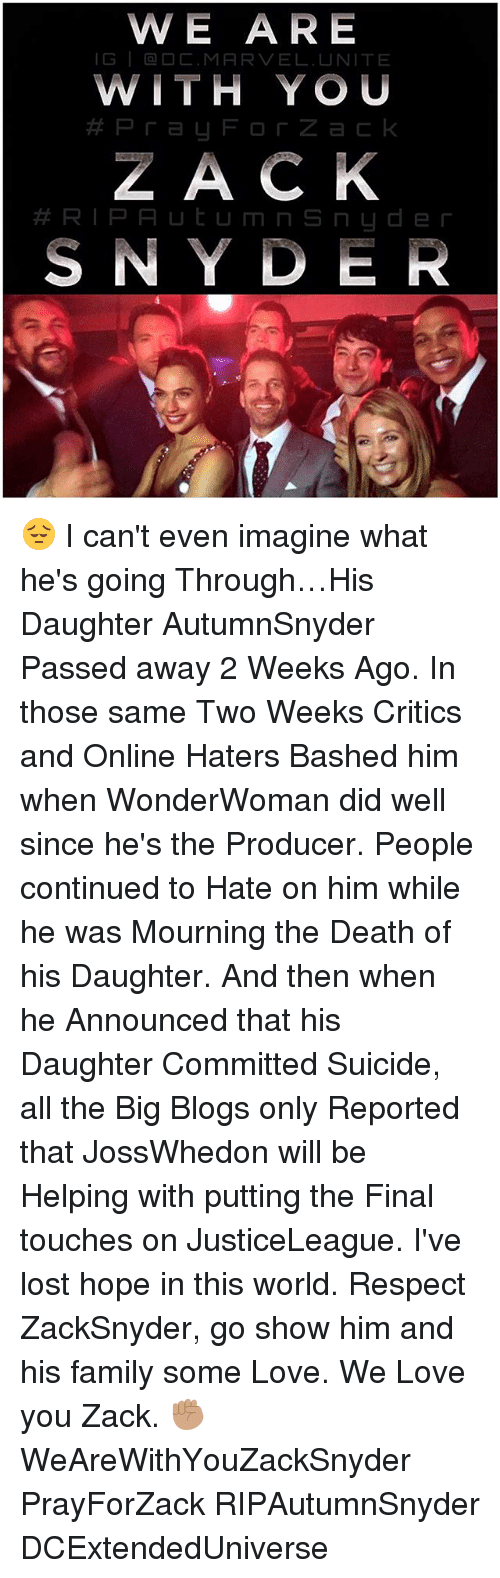 Family, Love, and Memes: W E ARE  G a DC. MARVEL. UNITE  WITH YOU  ZACK  RIPA U t U m n S n d e r  SNYDER 😔 I can't even imagine what he's going Through…His Daughter AutumnSnyder Passed away 2 Weeks Ago. In those same Two Weeks Critics and Online Haters Bashed him when WonderWoman did well since he's the Producer. People continued to Hate on him while he was Mourning the Death of his Daughter. And then when he Announced that his Daughter Committed Suicide, all the Big Blogs only Reported that JossWhedon will be Helping with putting the Final touches on JusticeLeague. I've lost hope in this world. Respect ZackSnyder, go show him and his family some Love. We Love you Zack. ✊🏽 WeAreWithYouZackSnyder PrayForZack RIPAutumnSnyder DCExtendedUniverse